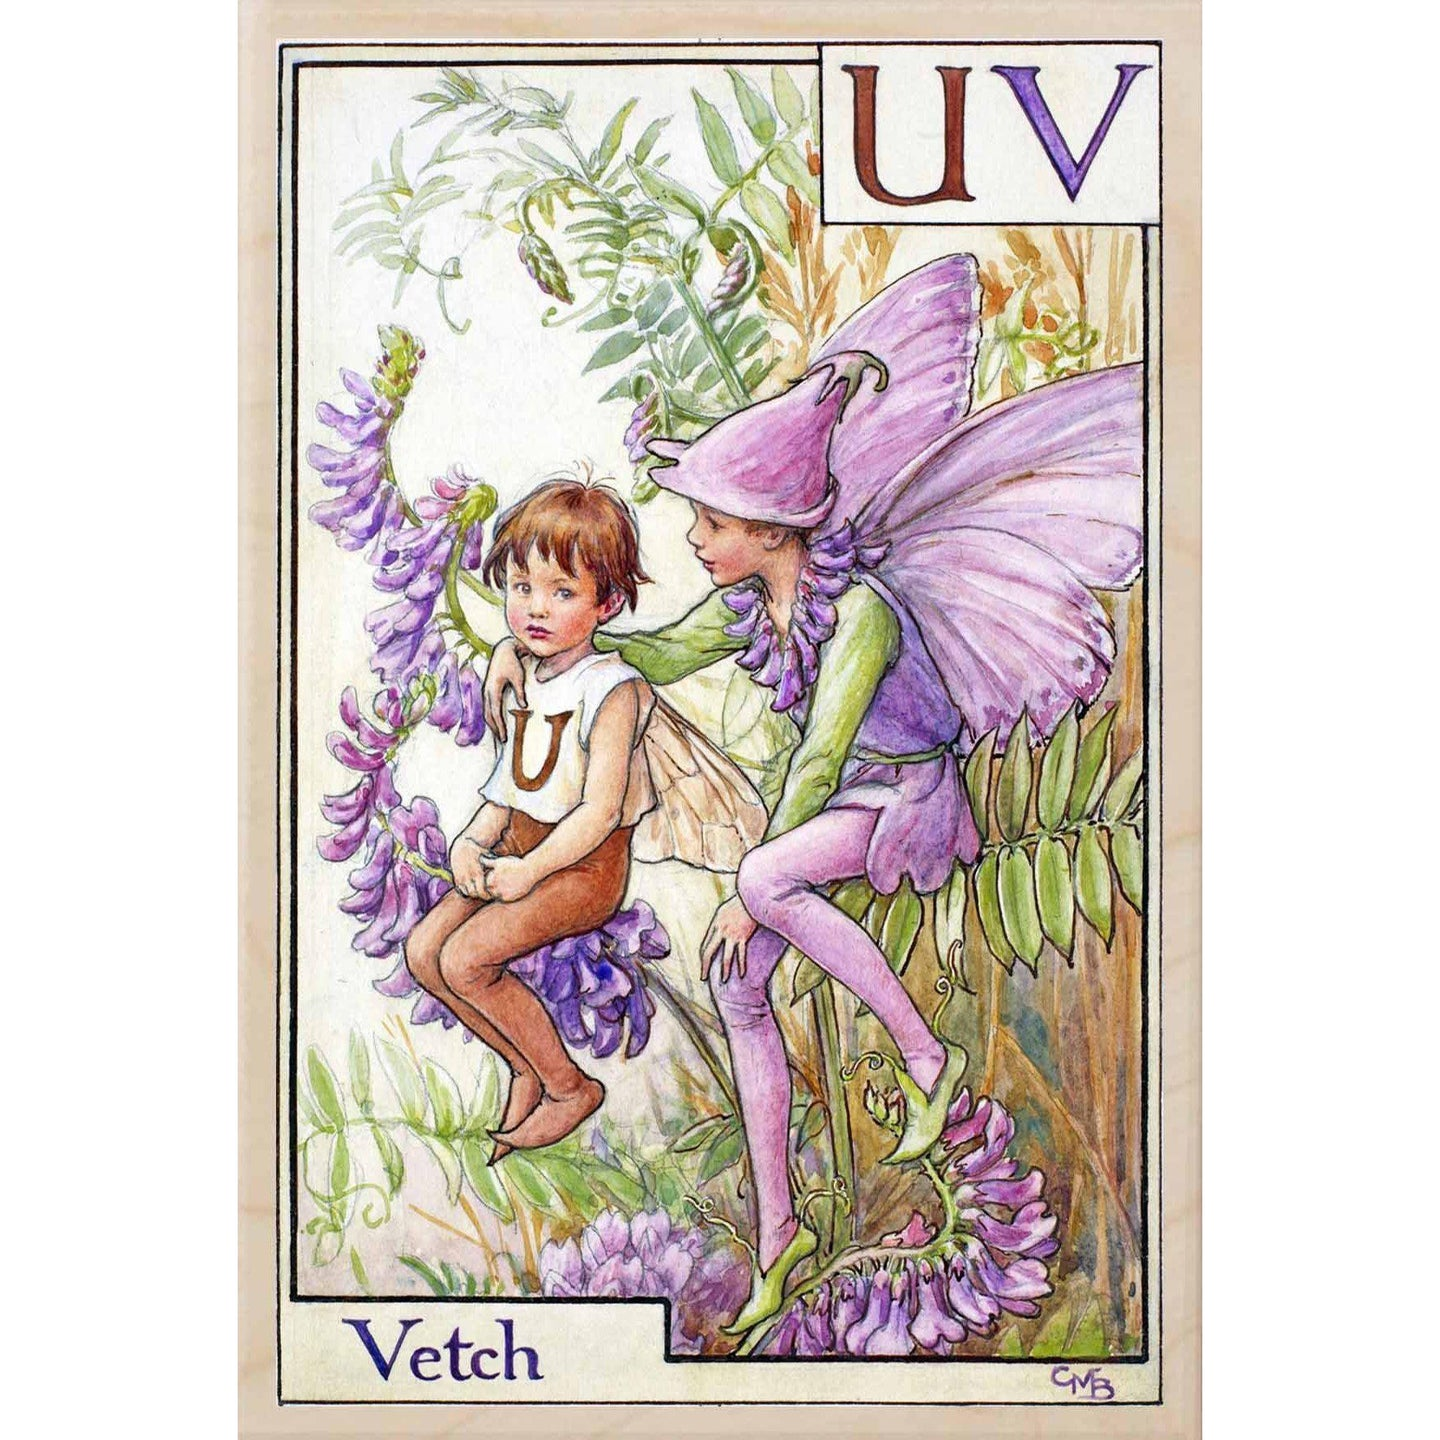 U-V, VETCH FAIRY